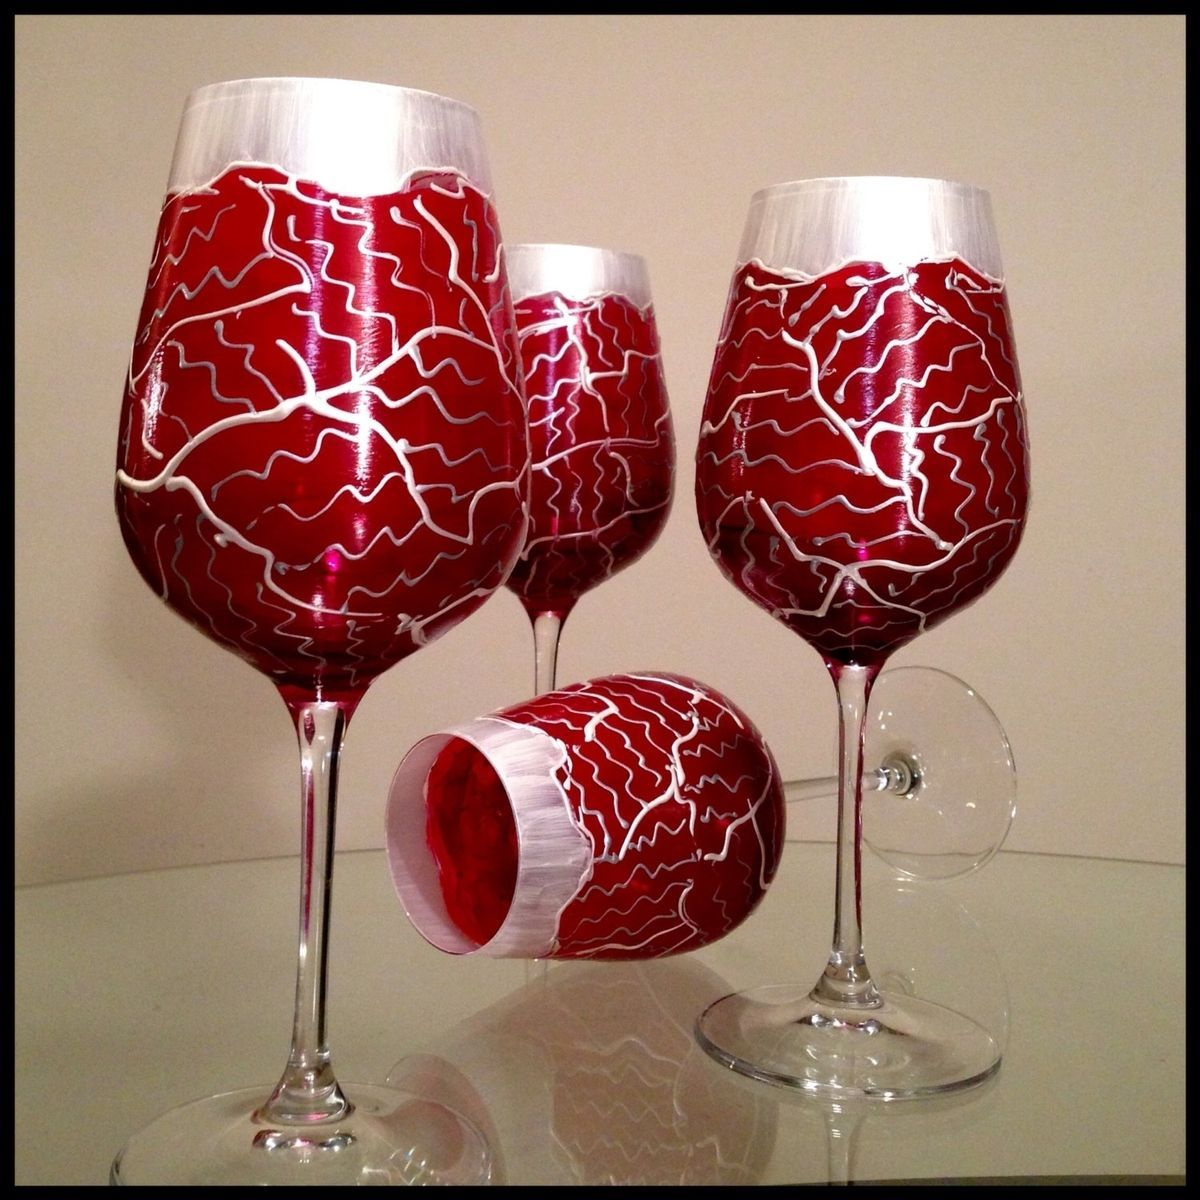 Abstract Wine Glass Paintings Images Pictures Becuo Hand Painted Wine Glasses Hand Painted Valentine Wine Glasses Painted Wine Glasses